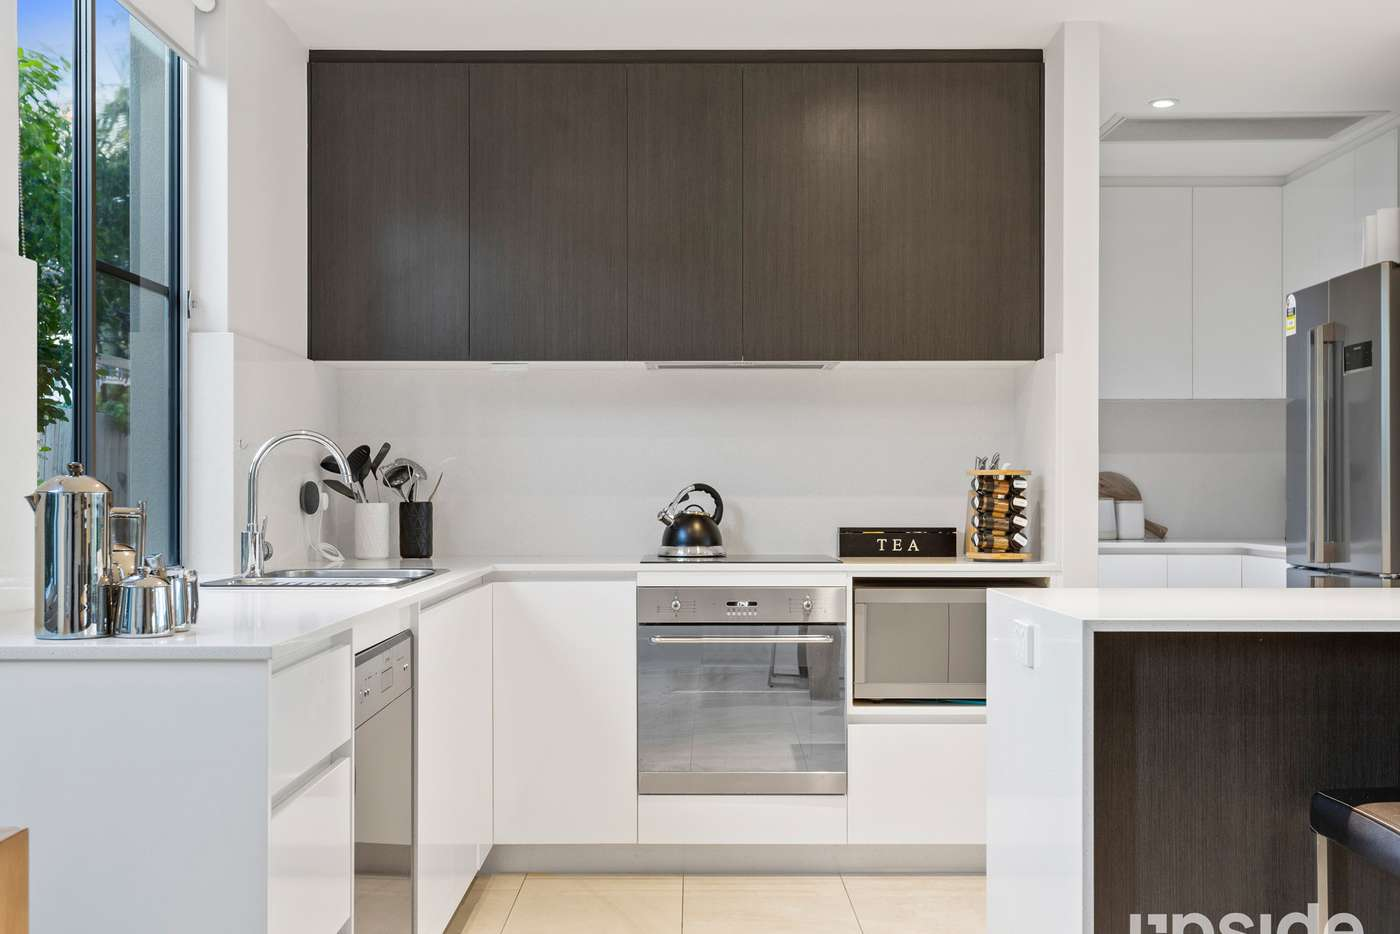 Fifth view of Homely house listing, 24 Mcdermott Parade, Rochedale QLD 4123